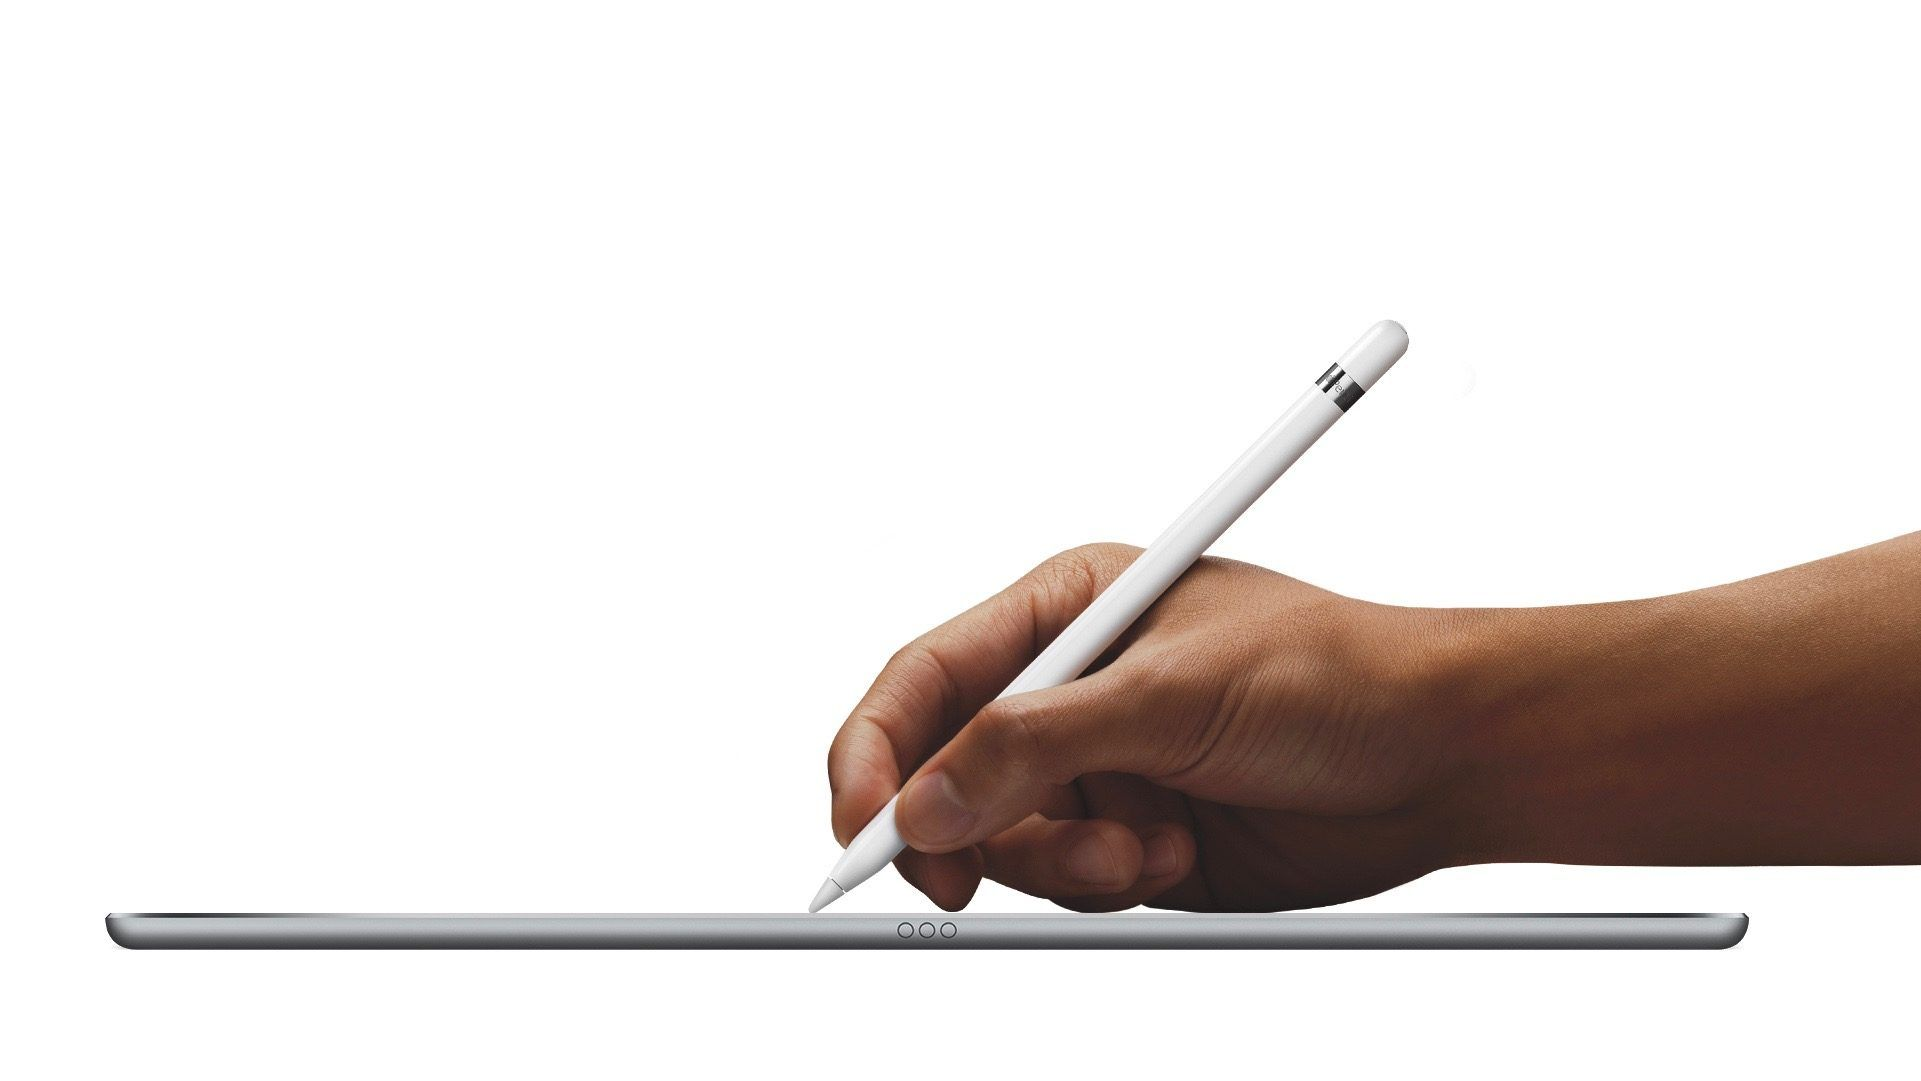 The best iOS apps for taking notes with Apple Pencil